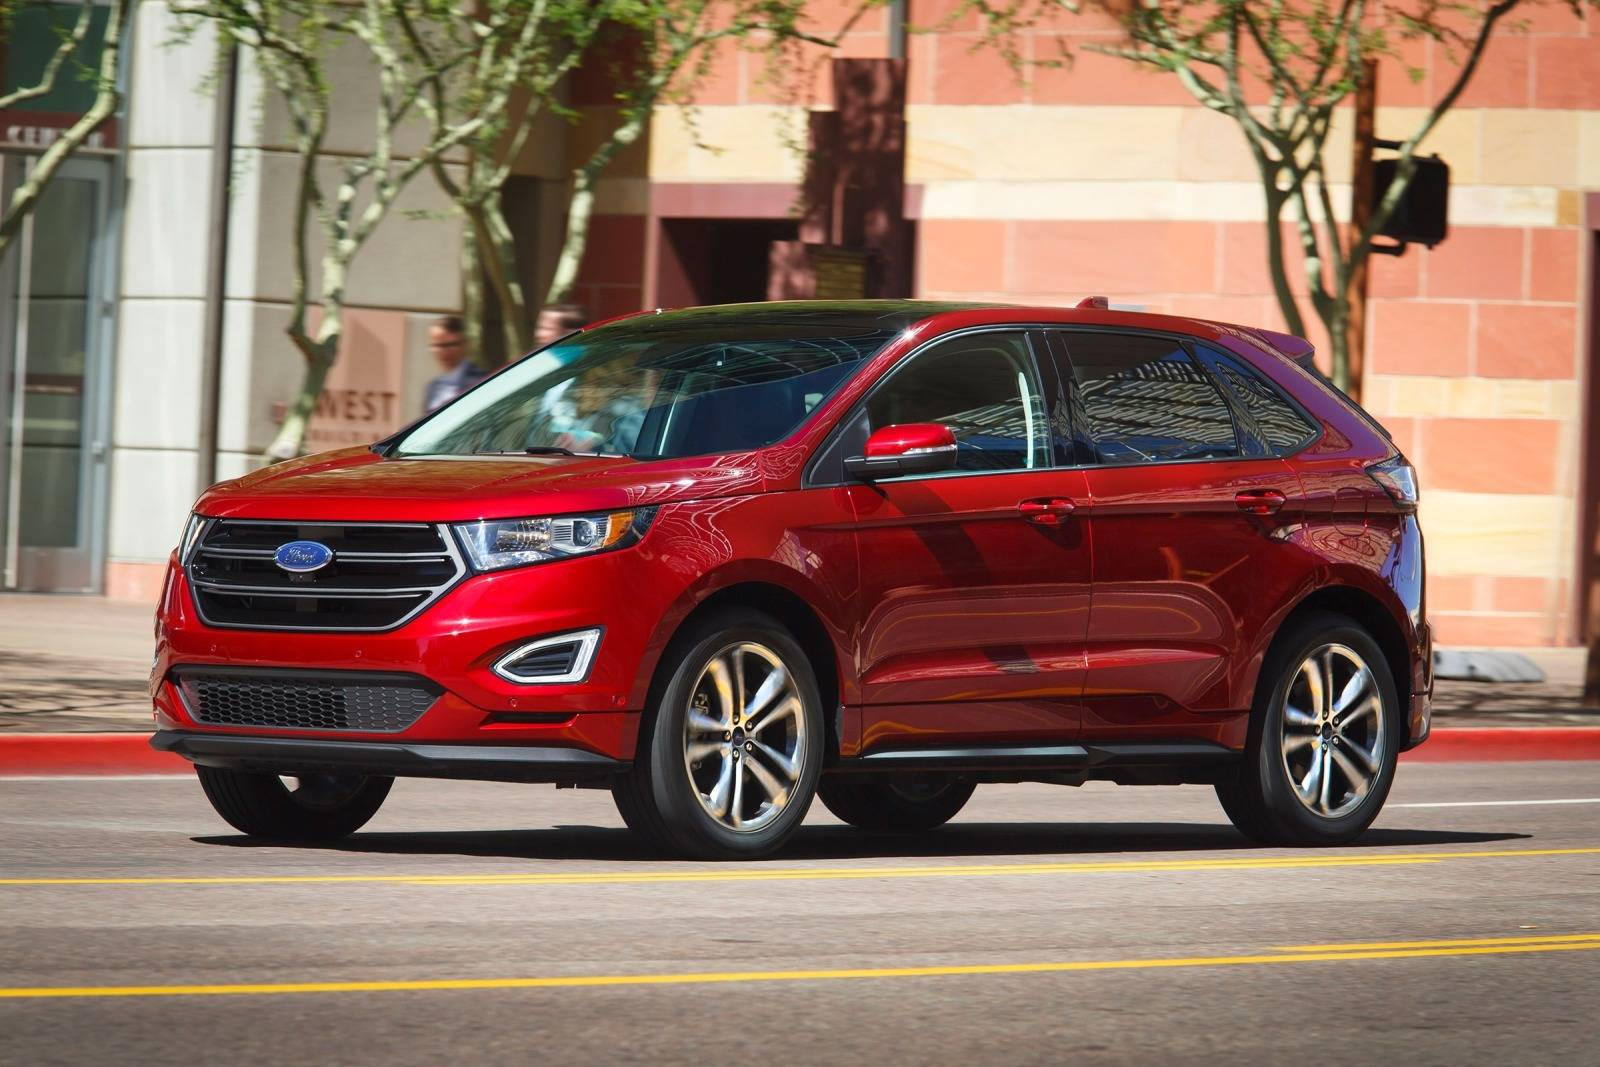 2018 ford edge suv review trims specs and price carbuzz. Black Bedroom Furniture Sets. Home Design Ideas